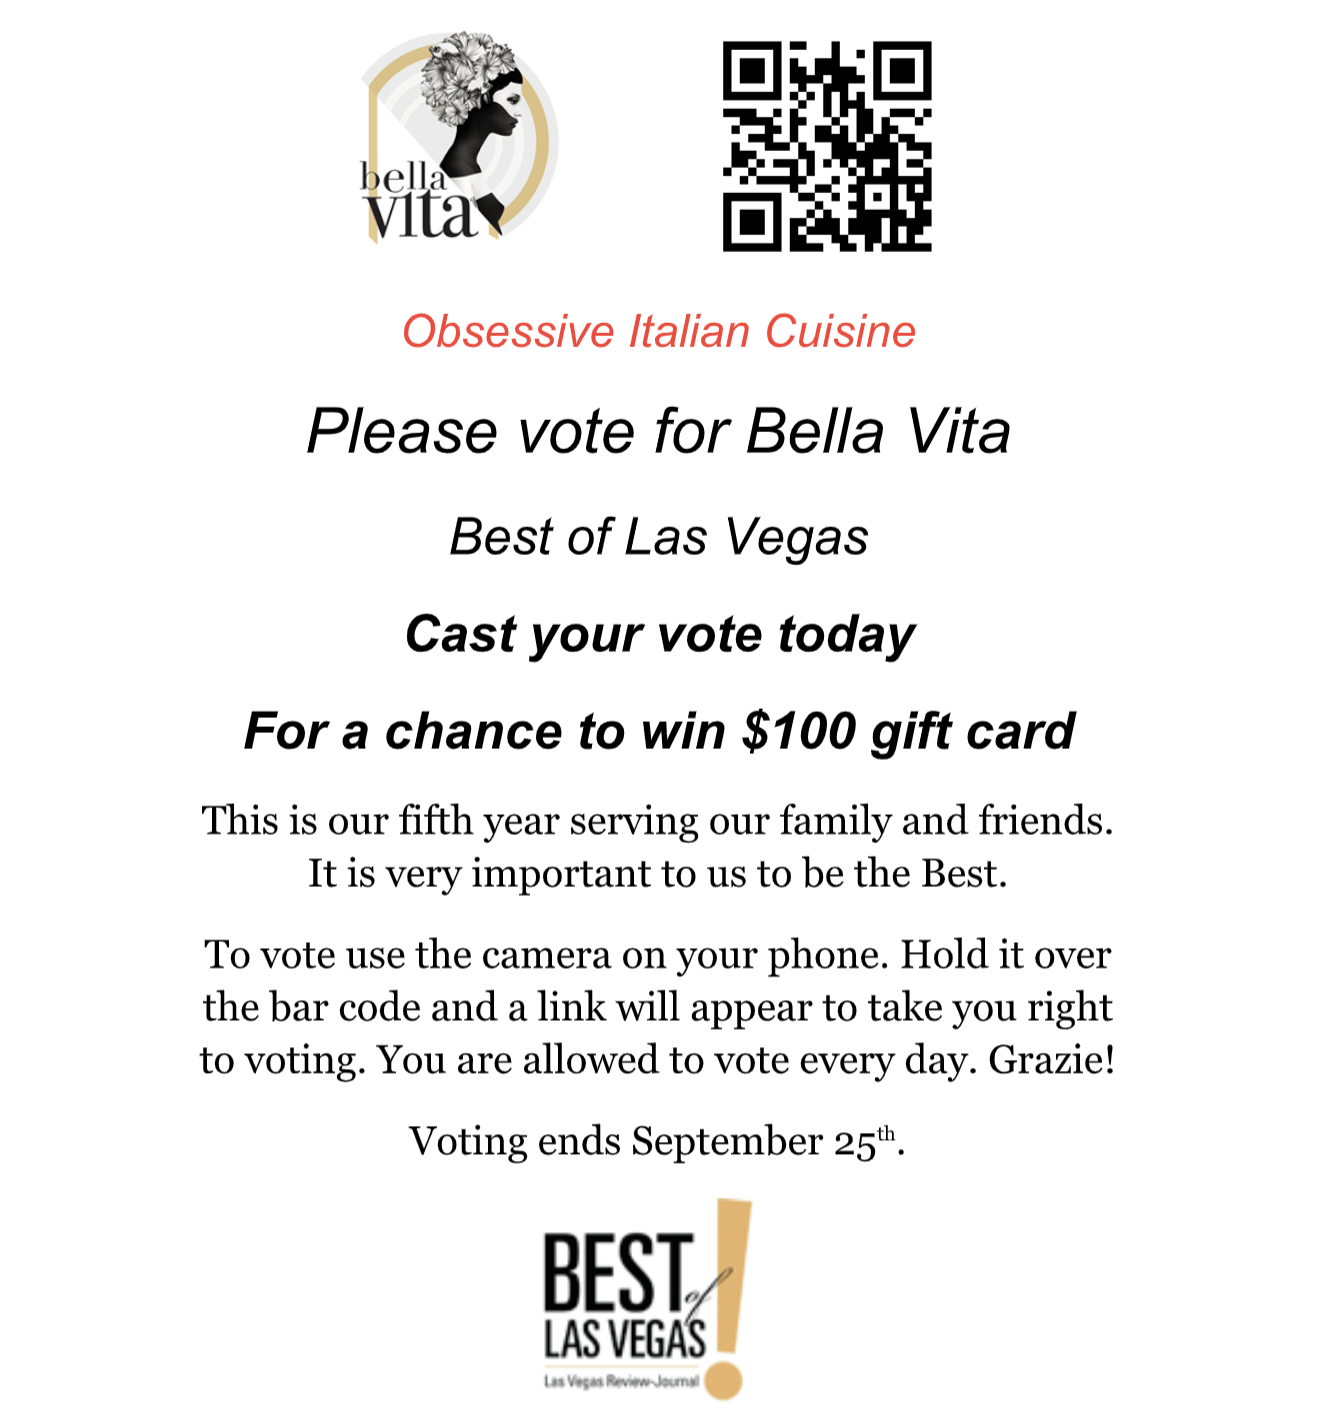 vote for bella vita in best of las vegas